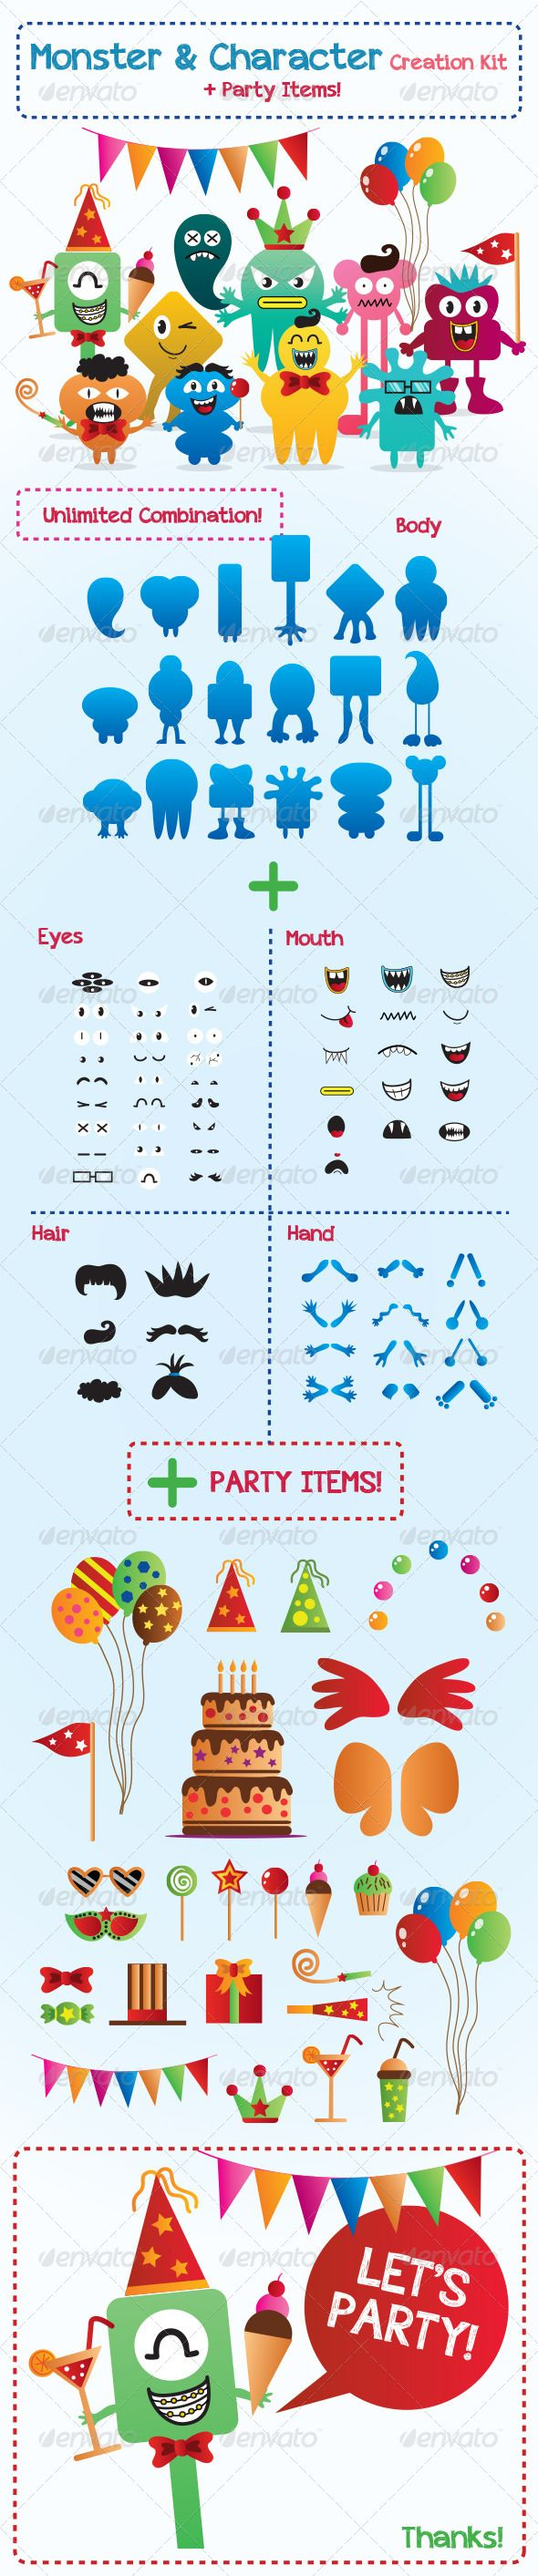 Monster and Character Creation Kit with Party Items  #GraphicRiver         Create your own Characters, Monsters and alien!  	 For all your needs, such as : Logos, Icons, Mascot, Illustrations, T-shirt designs, poster, children's books, birthday's card and more! You can obtain millions of combinations of monster shapes that you want. Very easy to edit, change colors and size.